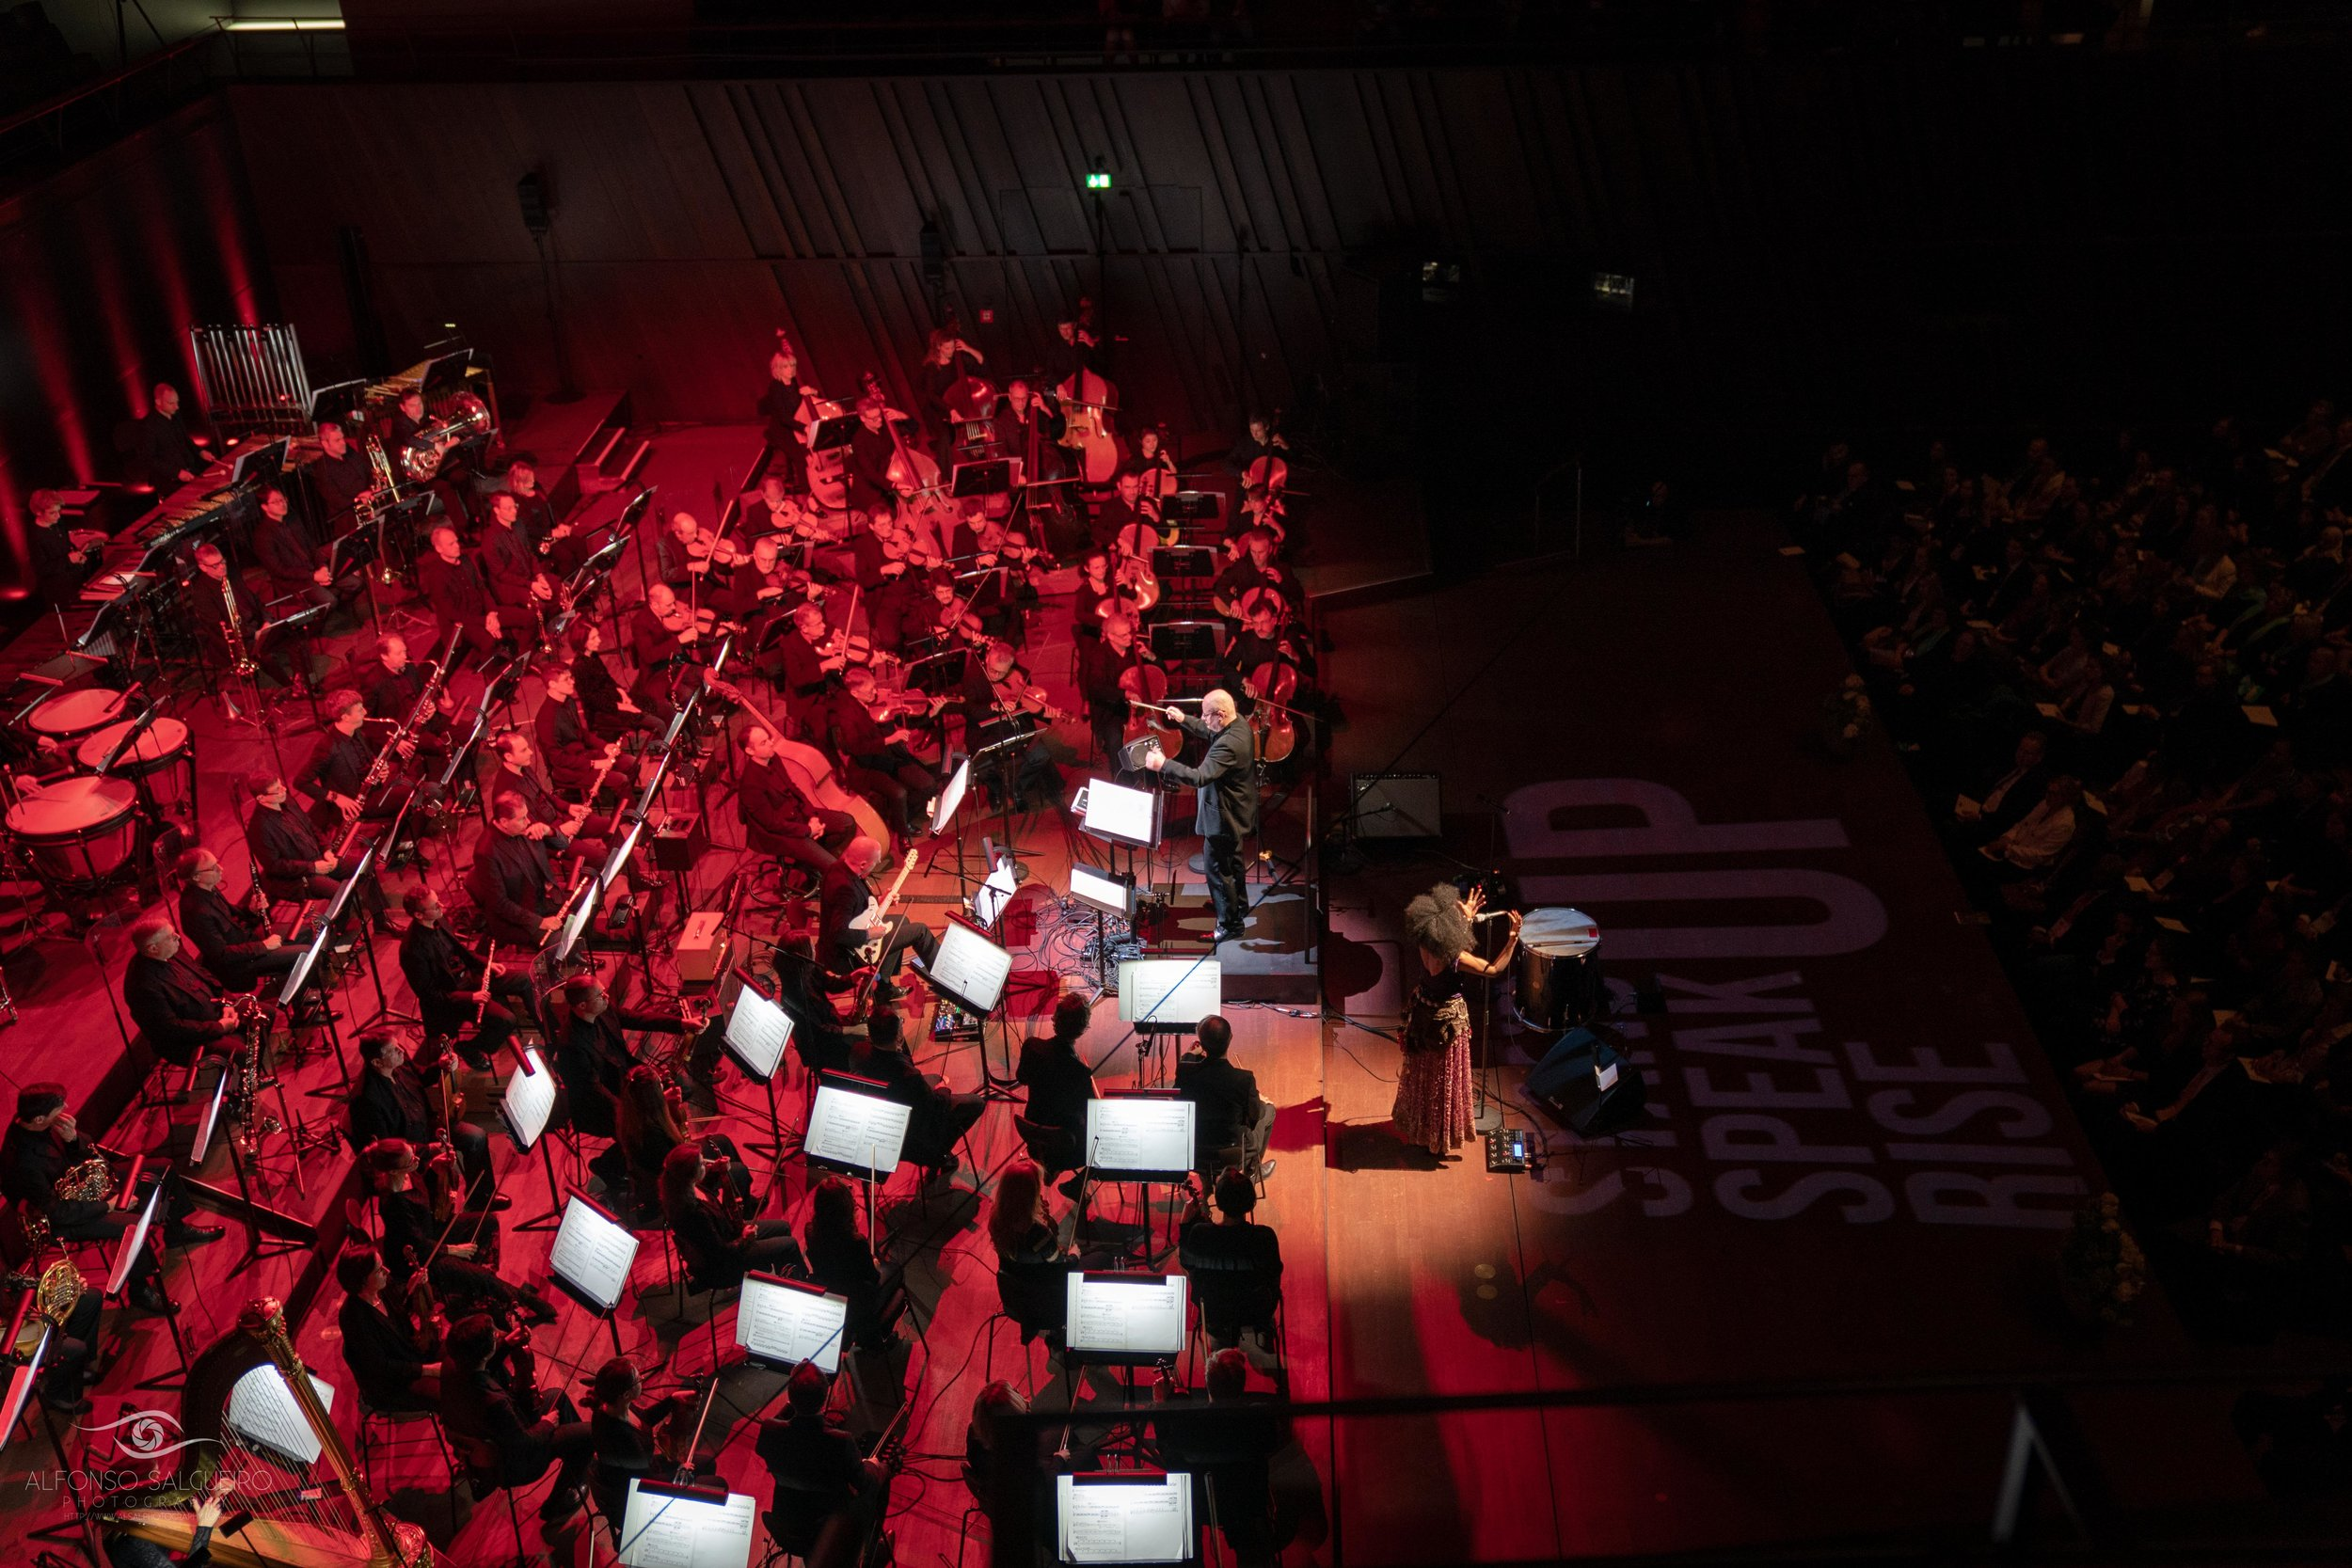 Philharmonie 18-19 season in images_-17.jpg